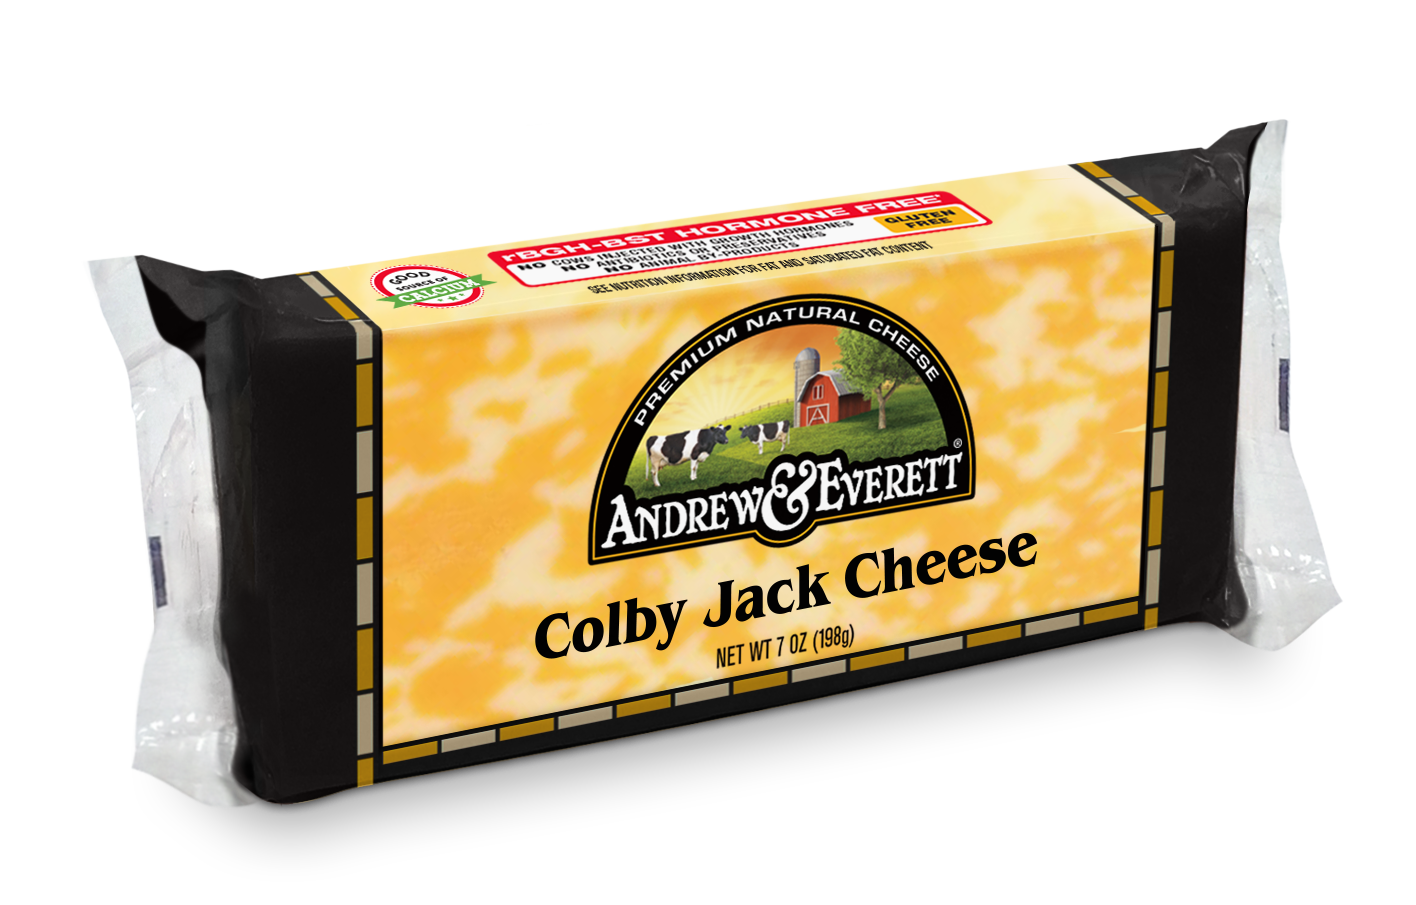 Colby Jack Brick Cheese – Andrew & Everett Cheese